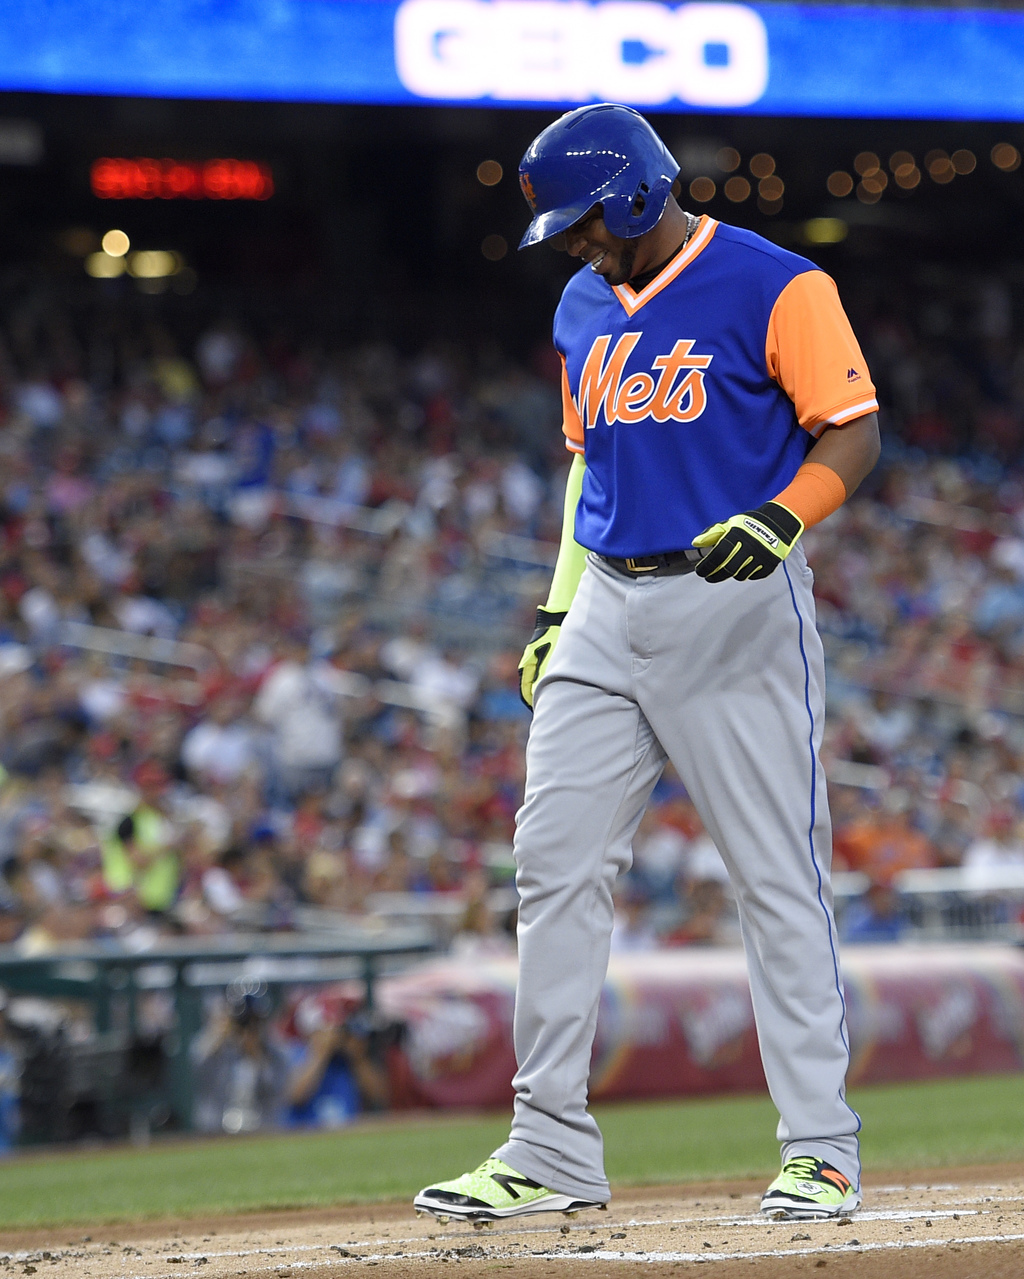 New York Mets' Yoenis Cespedes reacts during the first inning of a baseball game against the Washington Nationals, Friday, Aug. 25, 2017, in Washingto...